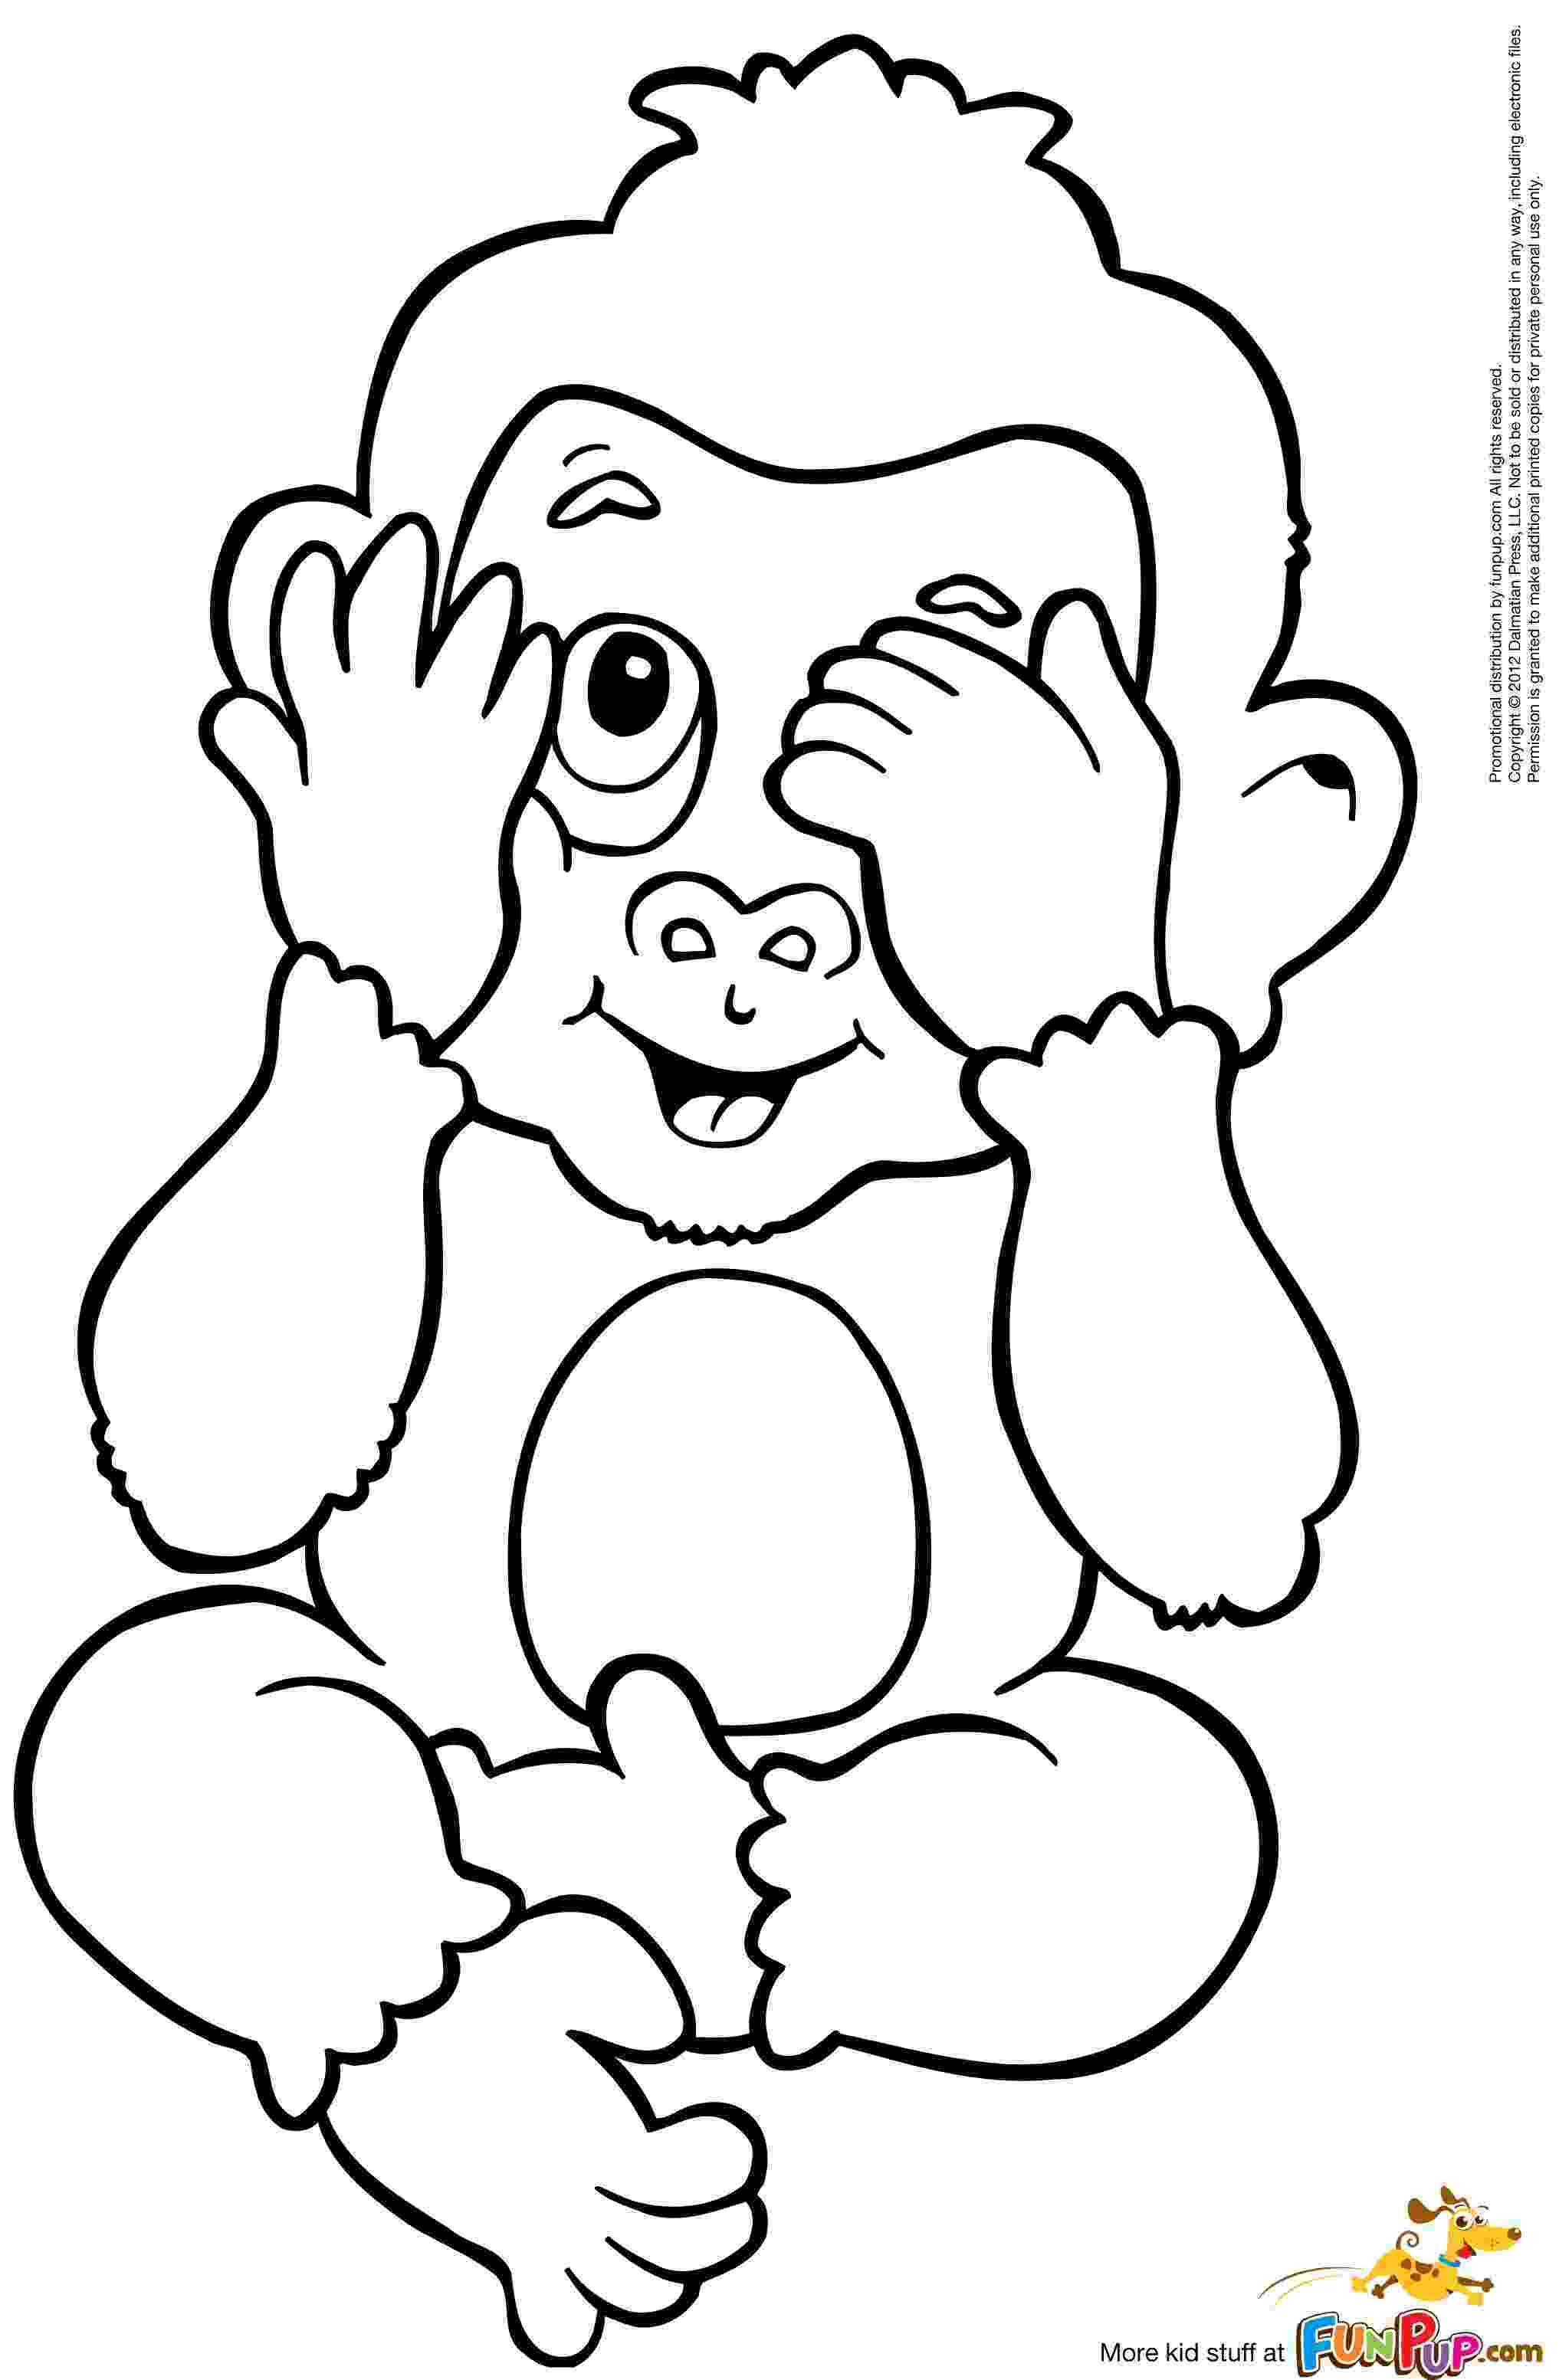 baby monkey coloring pictures baby monkey coloring pages to download and print for free baby coloring monkey pictures